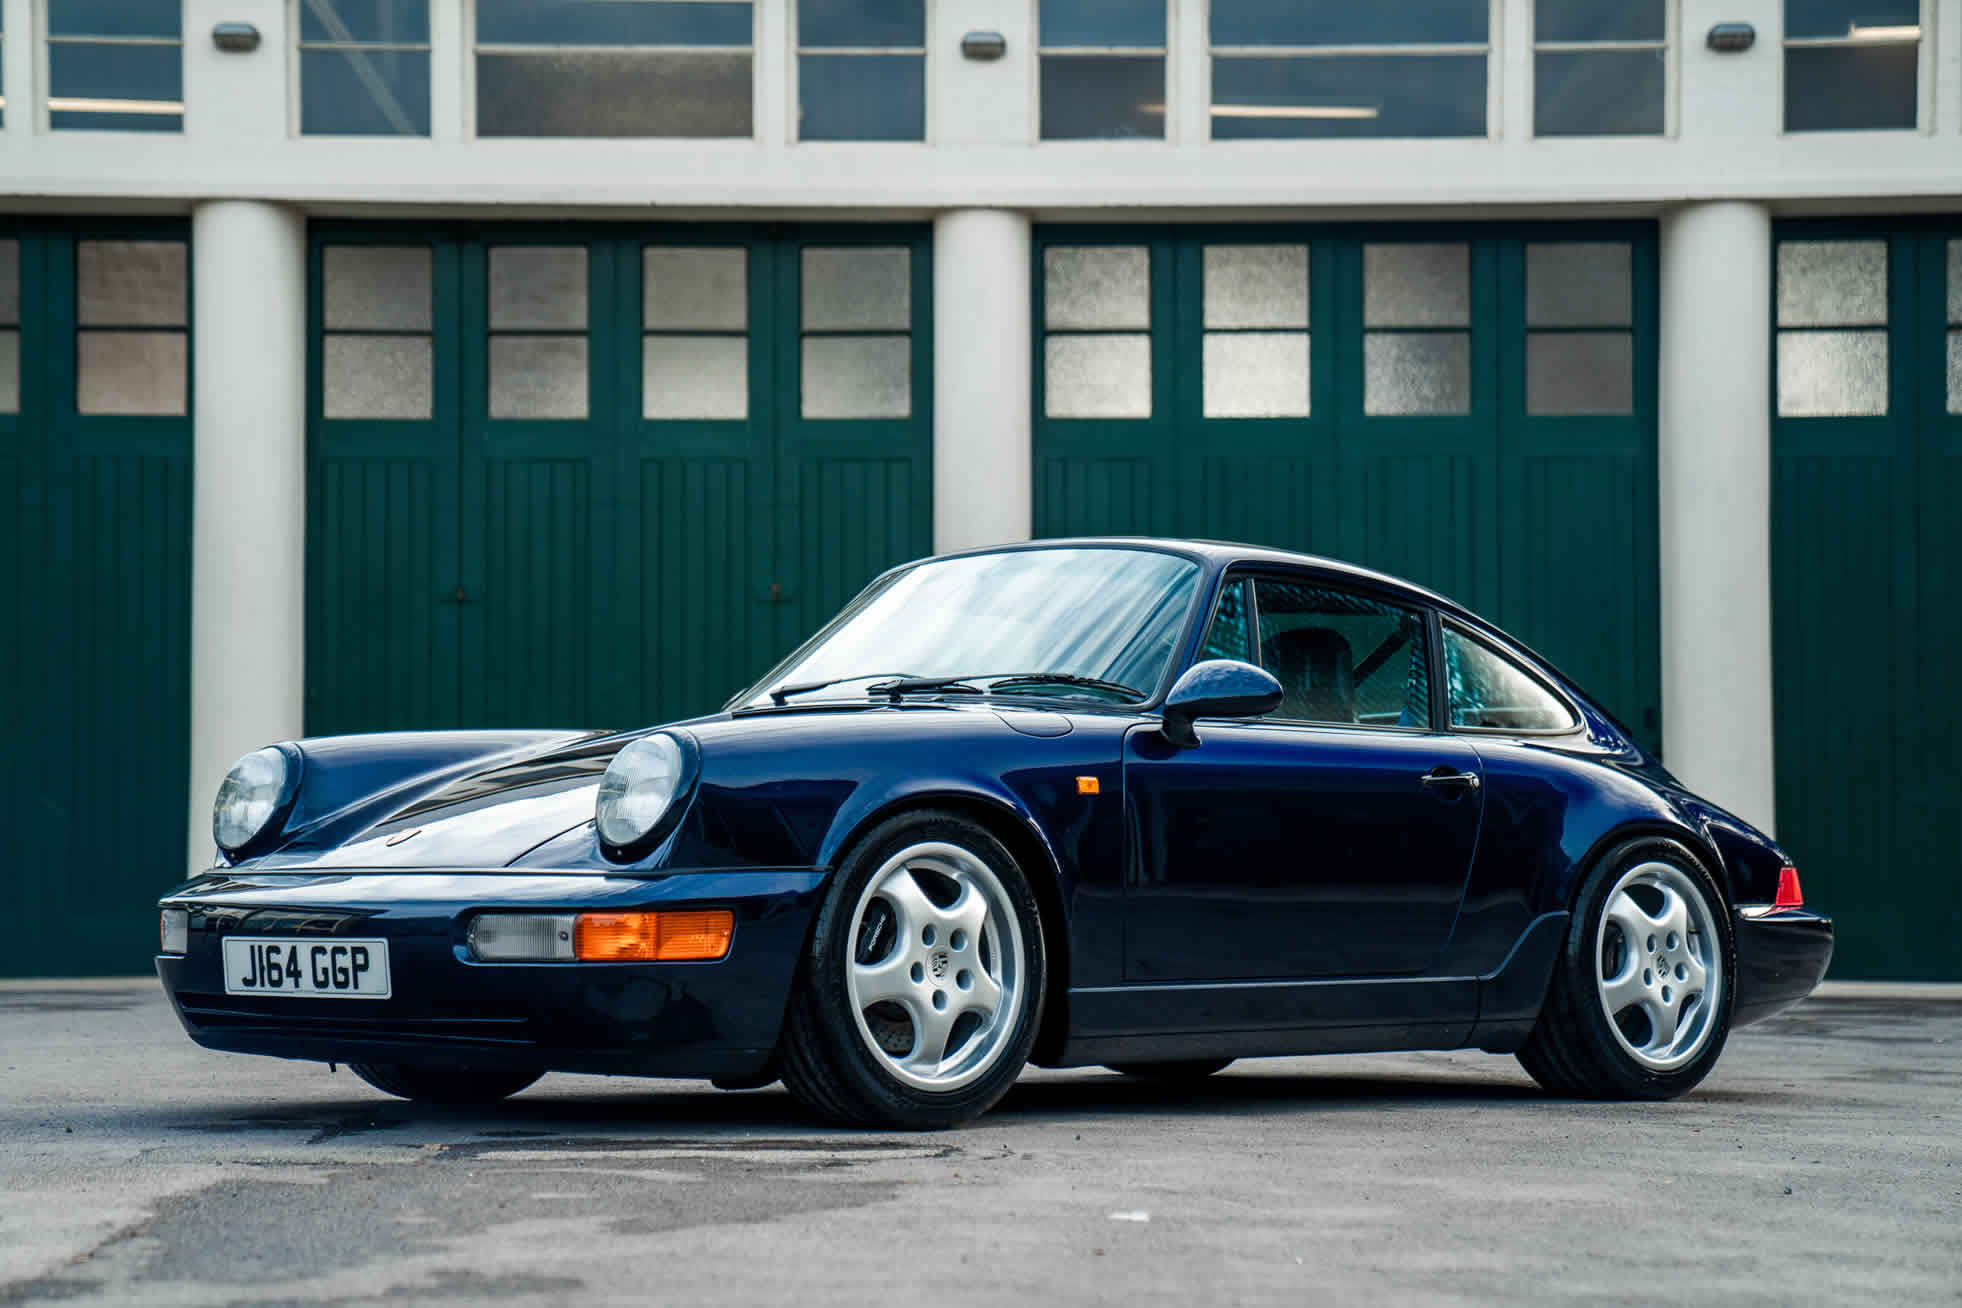 For sale 1991 Porsche Carrera 964 RS. Sports Purpose